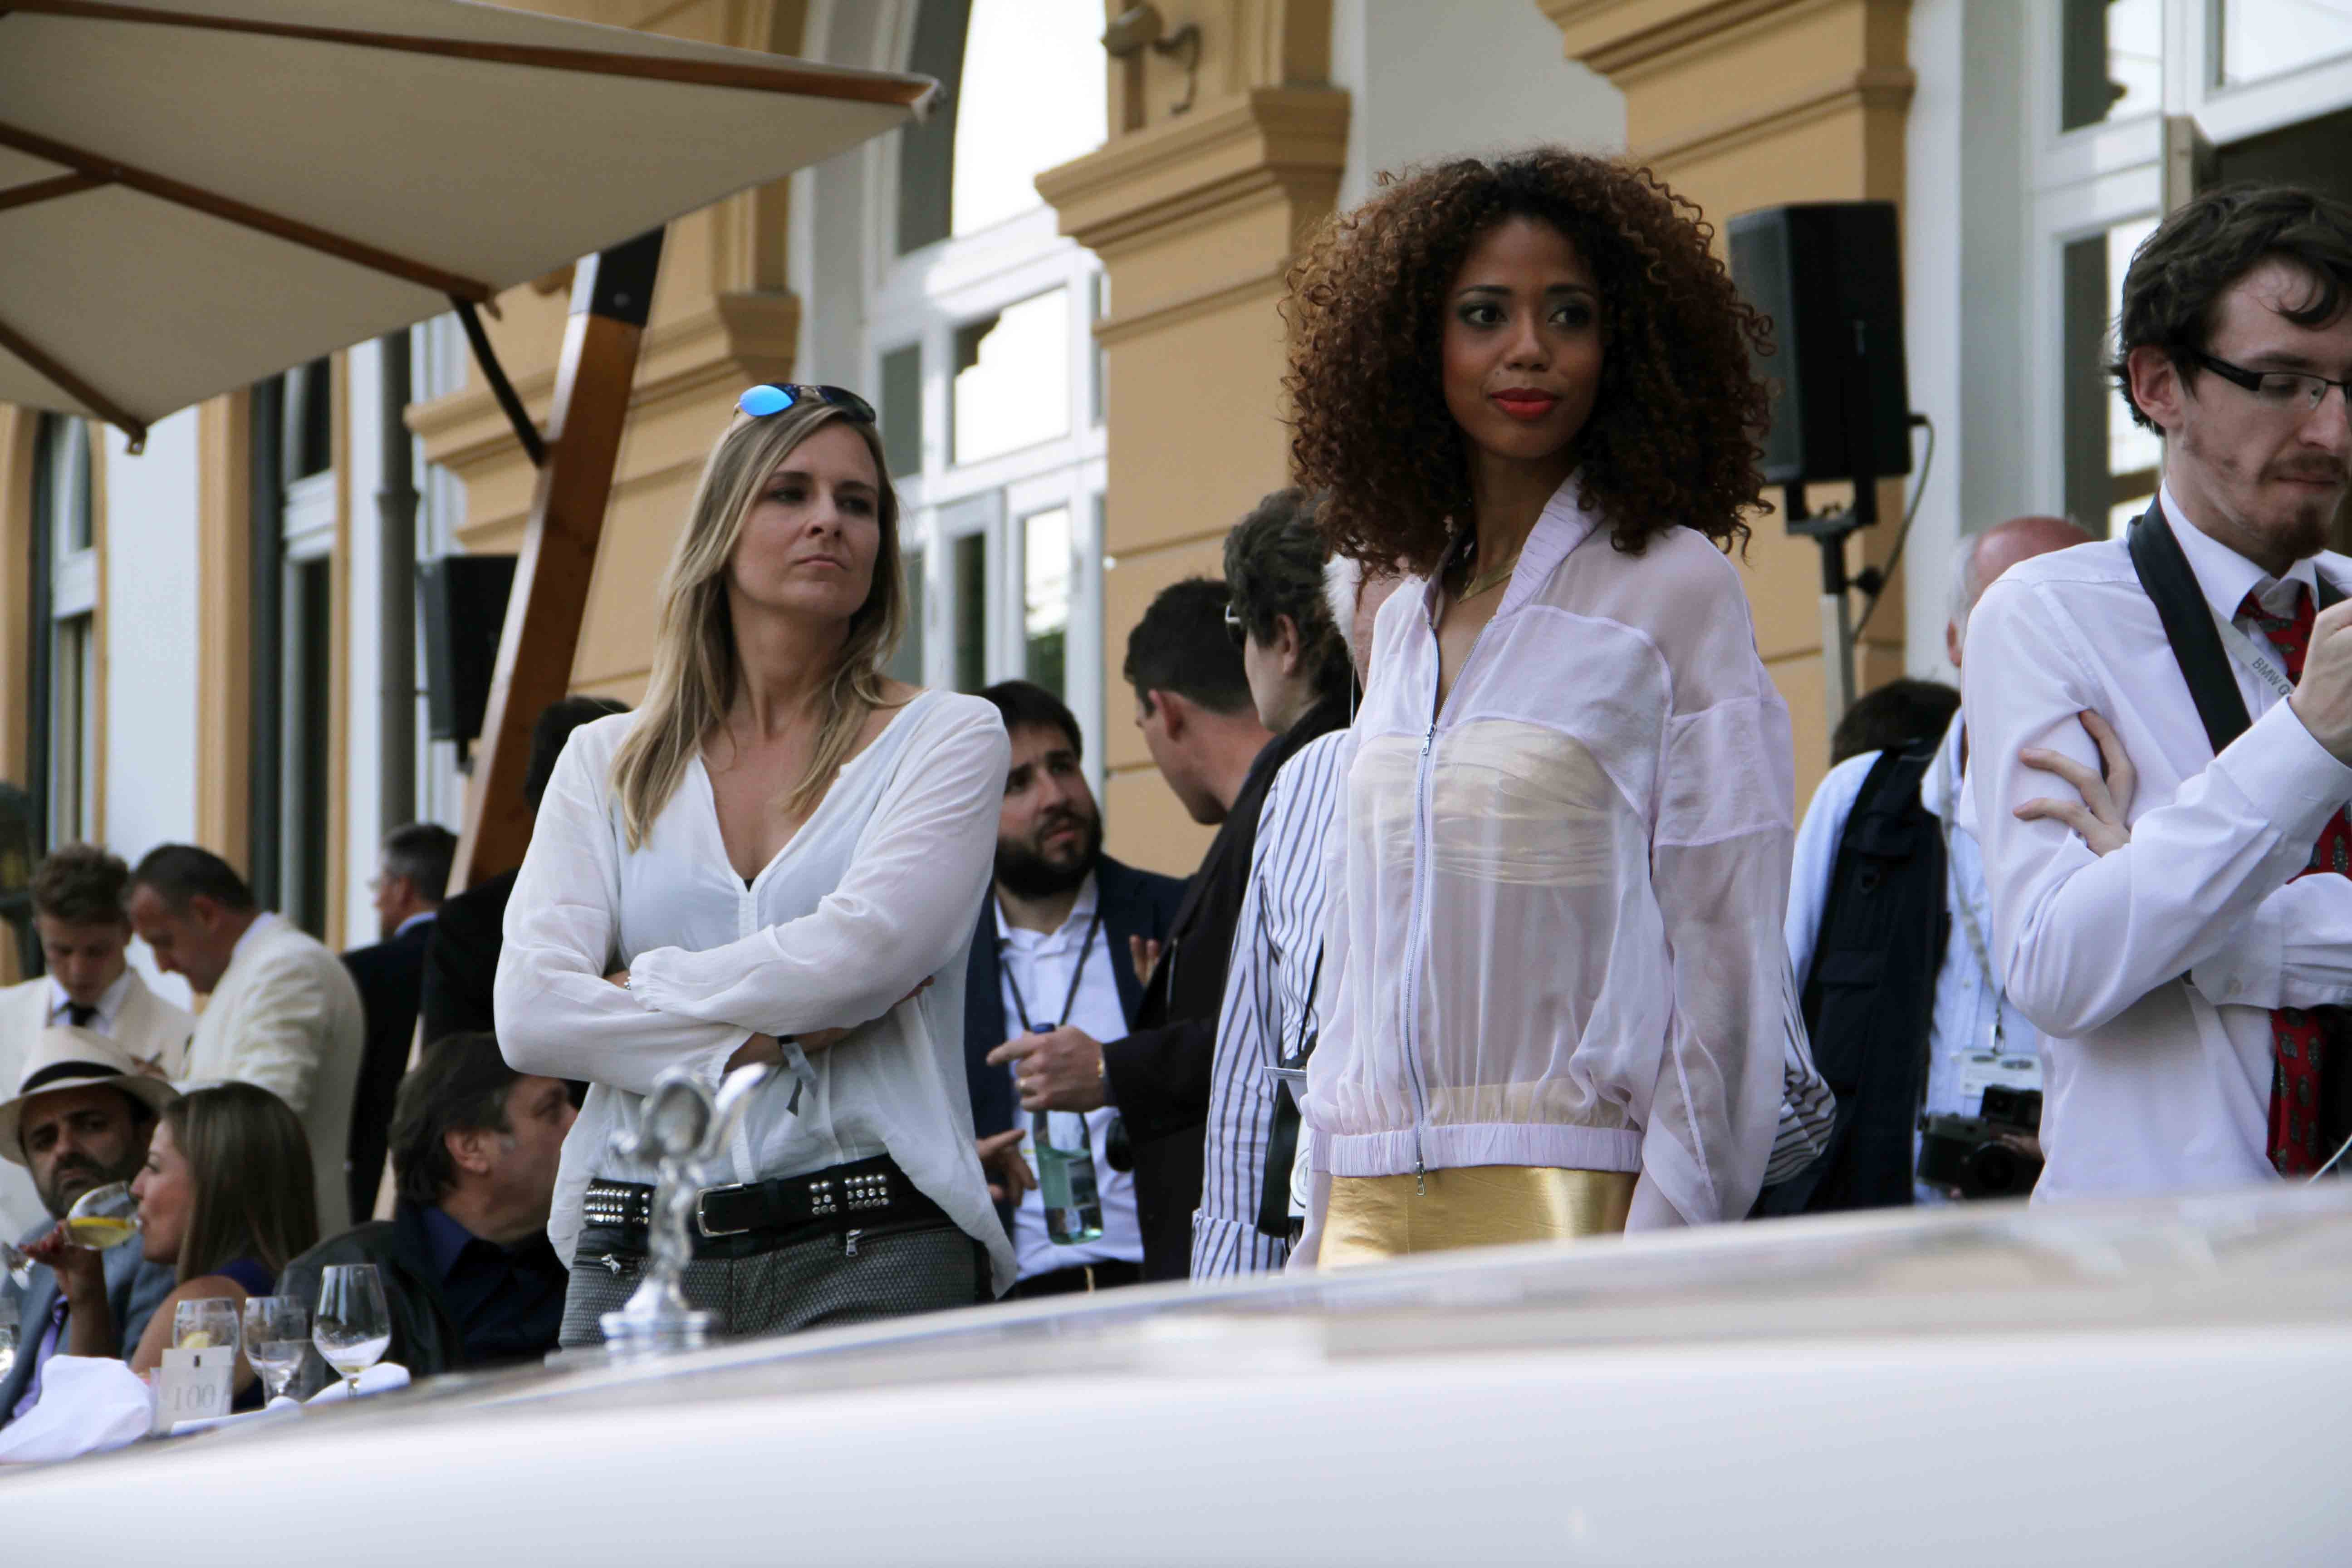 Photo Report: Watch And Car Spotting At The 2016 Concorso d'Eleganza Villa d'Este With A. Lange & Söhne Photo Report: Watch And Car Spotting At The 2016 Concorso d'Eleganza Villa d'Este With A. Lange & Söhne IMG 5749